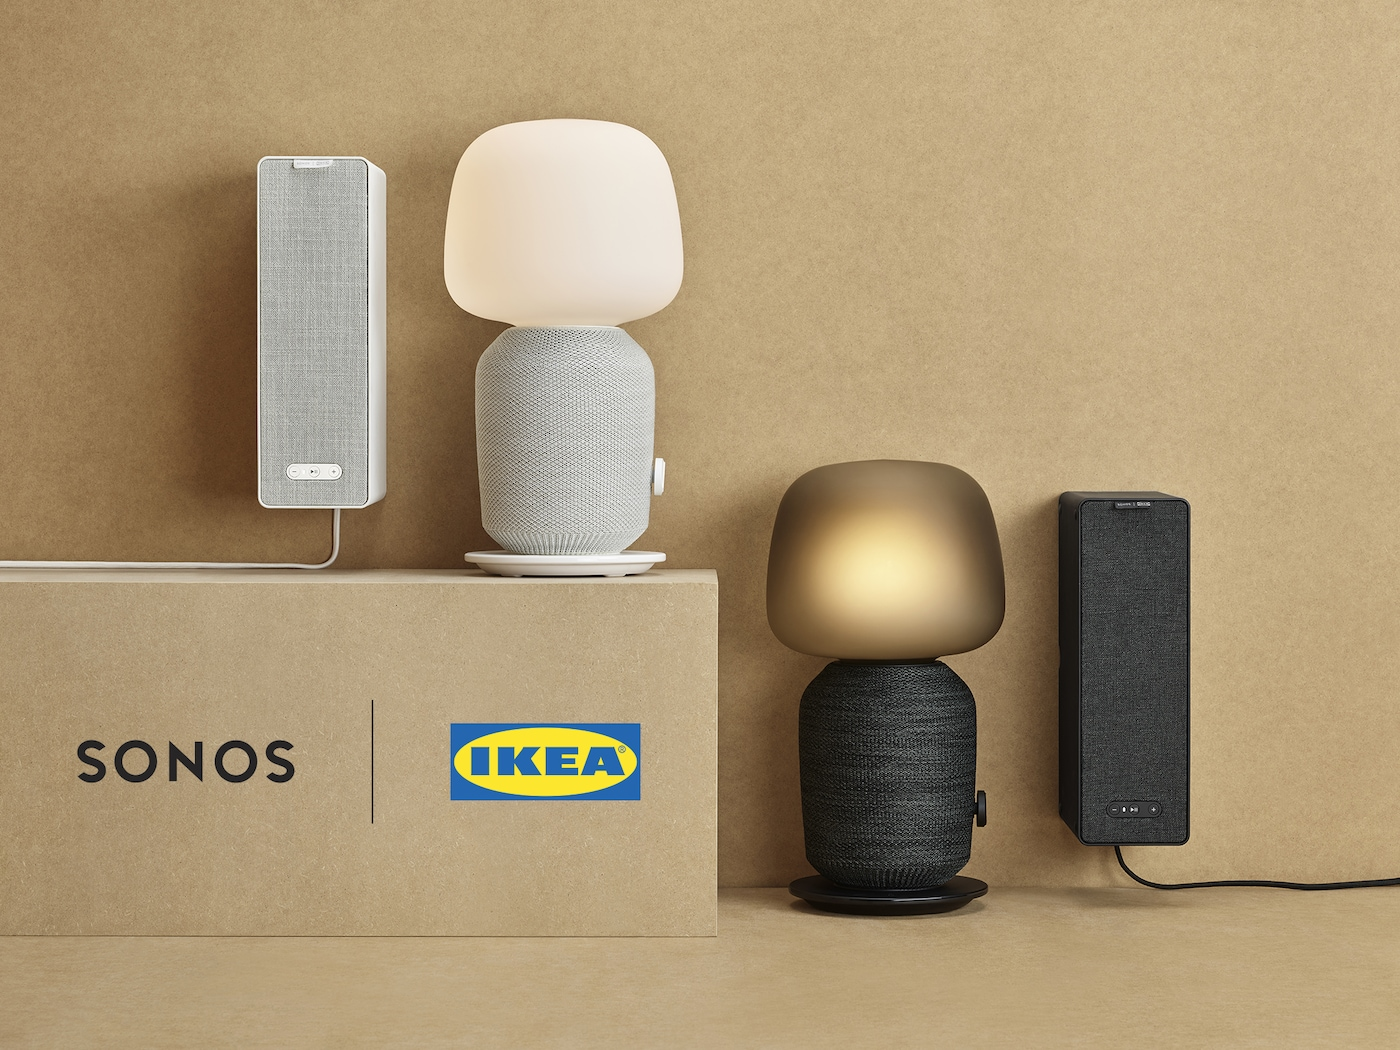 Black and white SYMFONISK table lamps, with built-in WiFi speakers and two vertically hung bookshelf speakers, created by SONOS and IKEA.